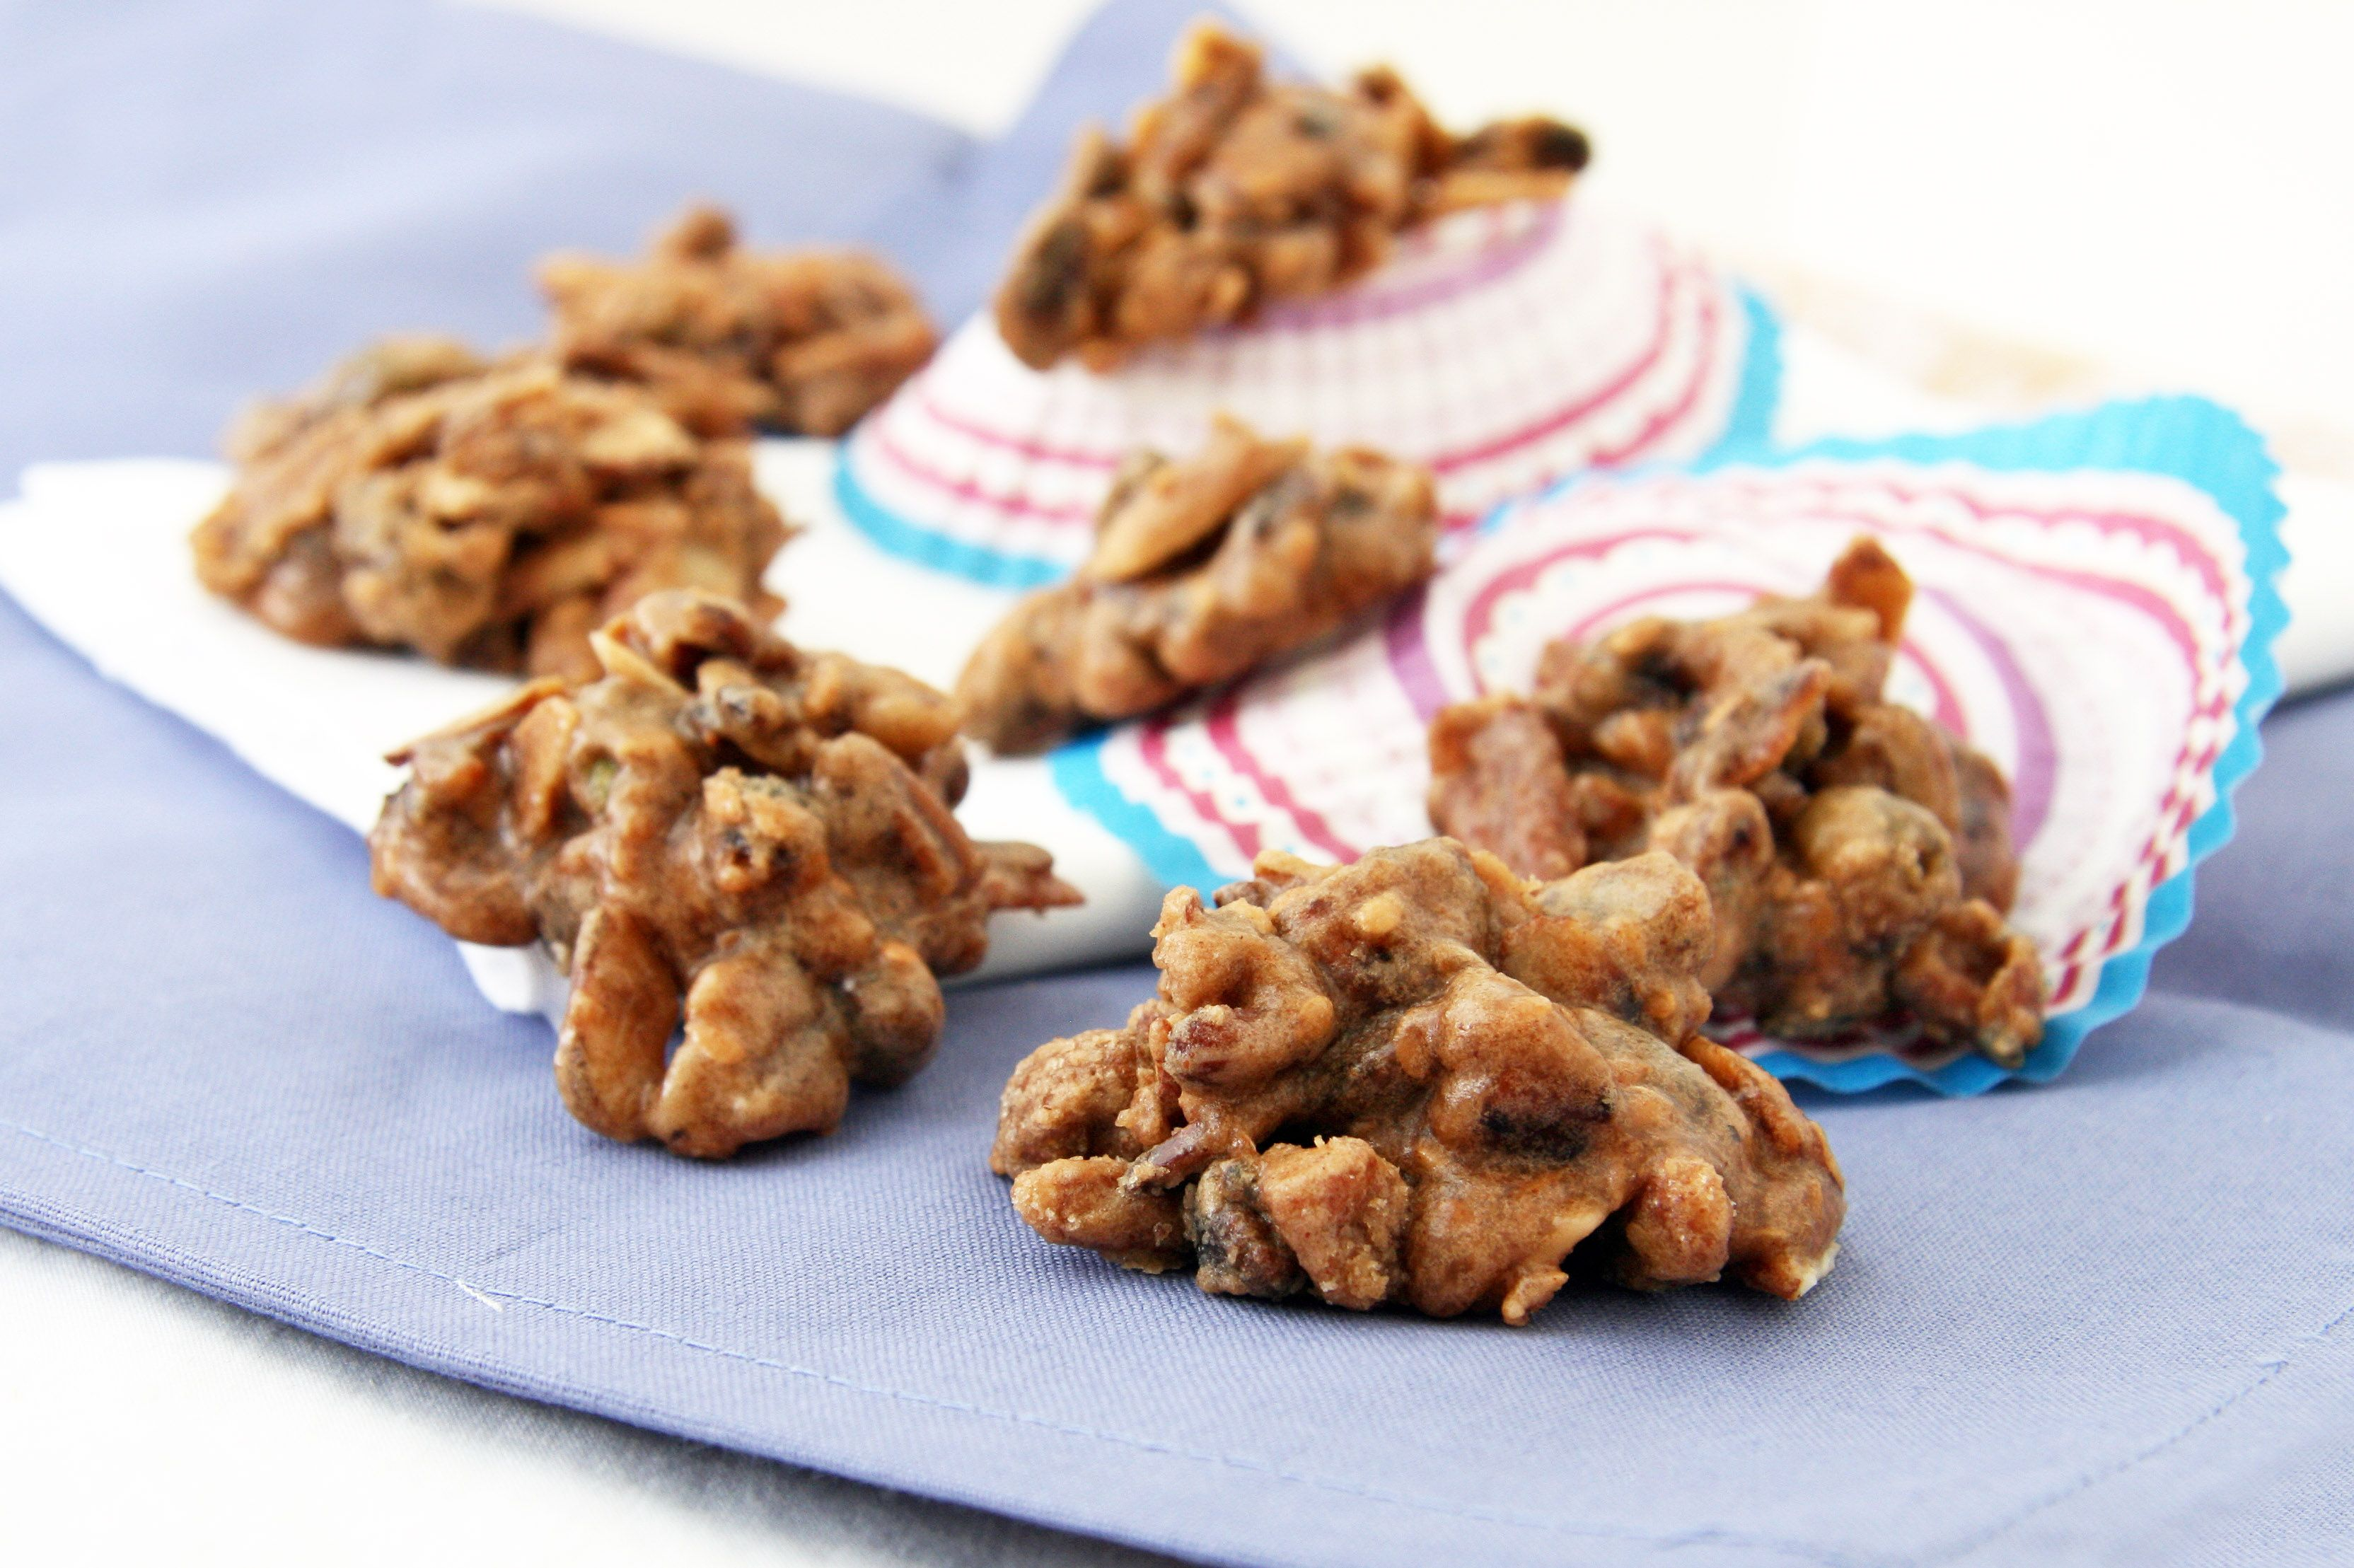 Salted Mixed Nut Clusters